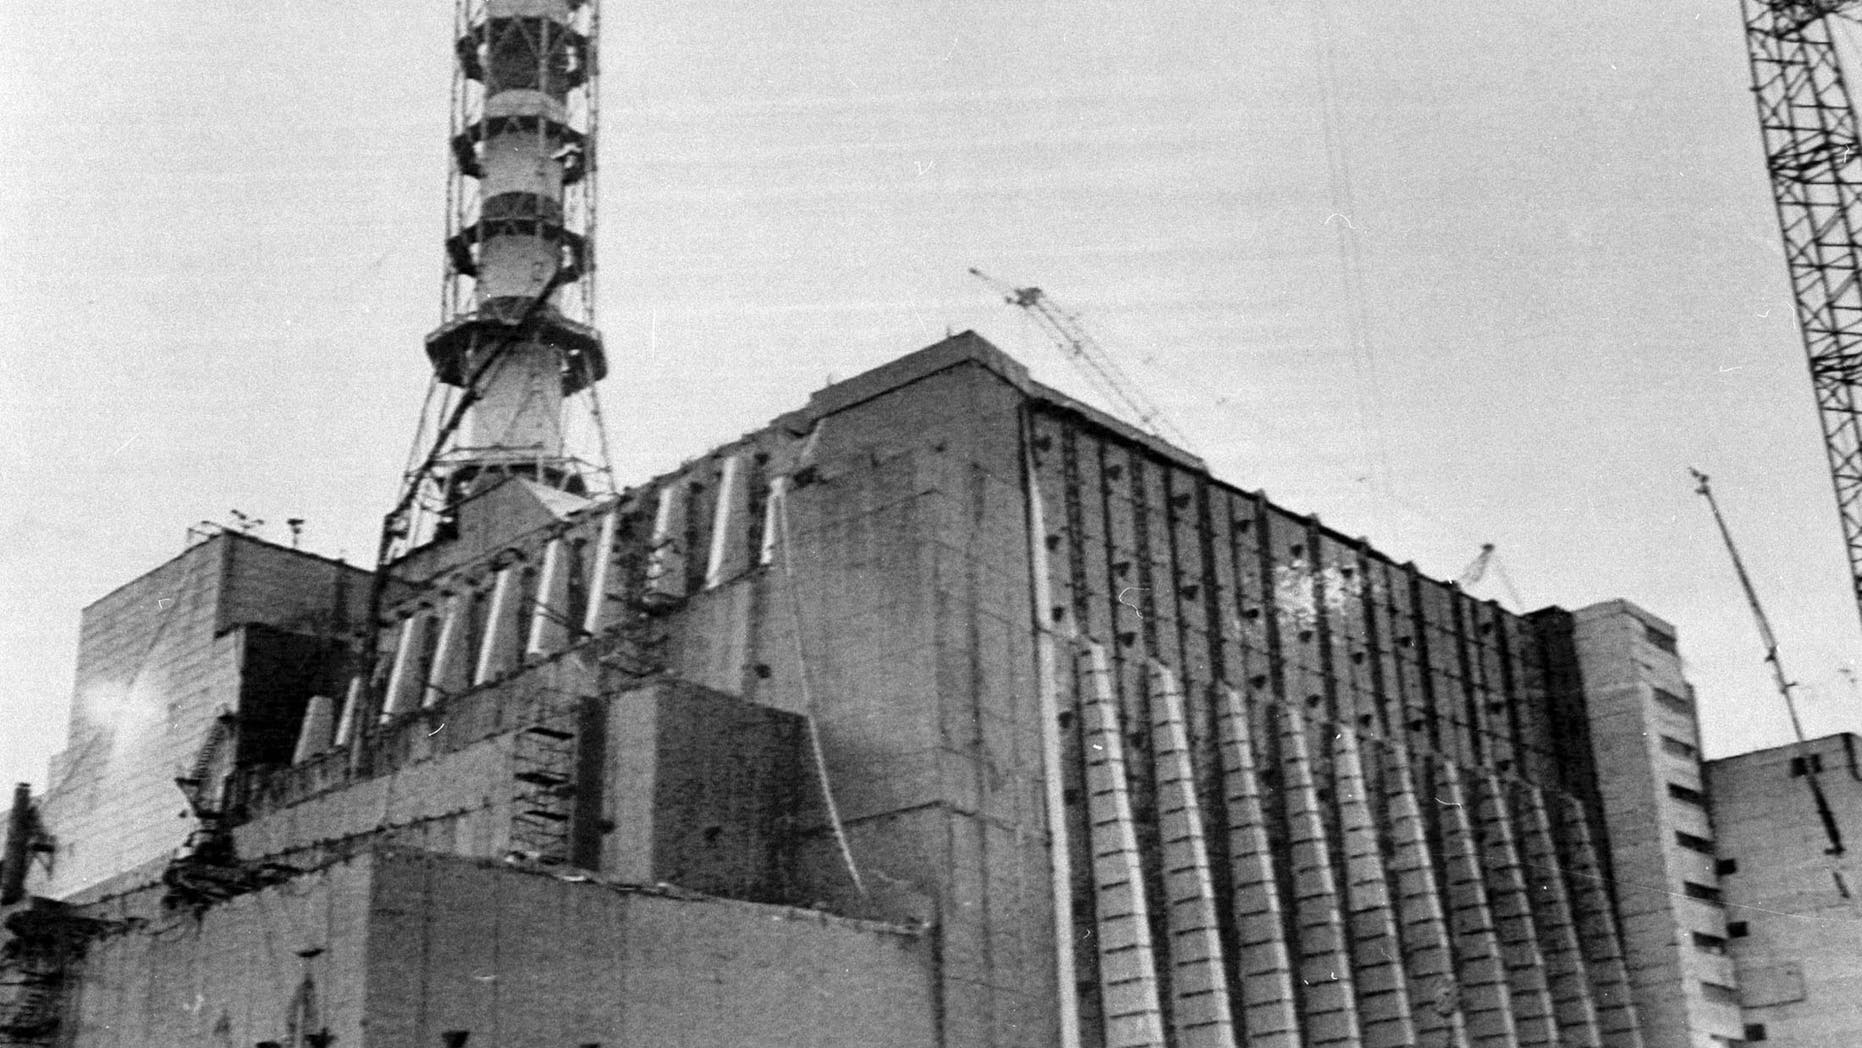 Chernobyl Explosion How a Deadly Nuclear Accident Frightened the World